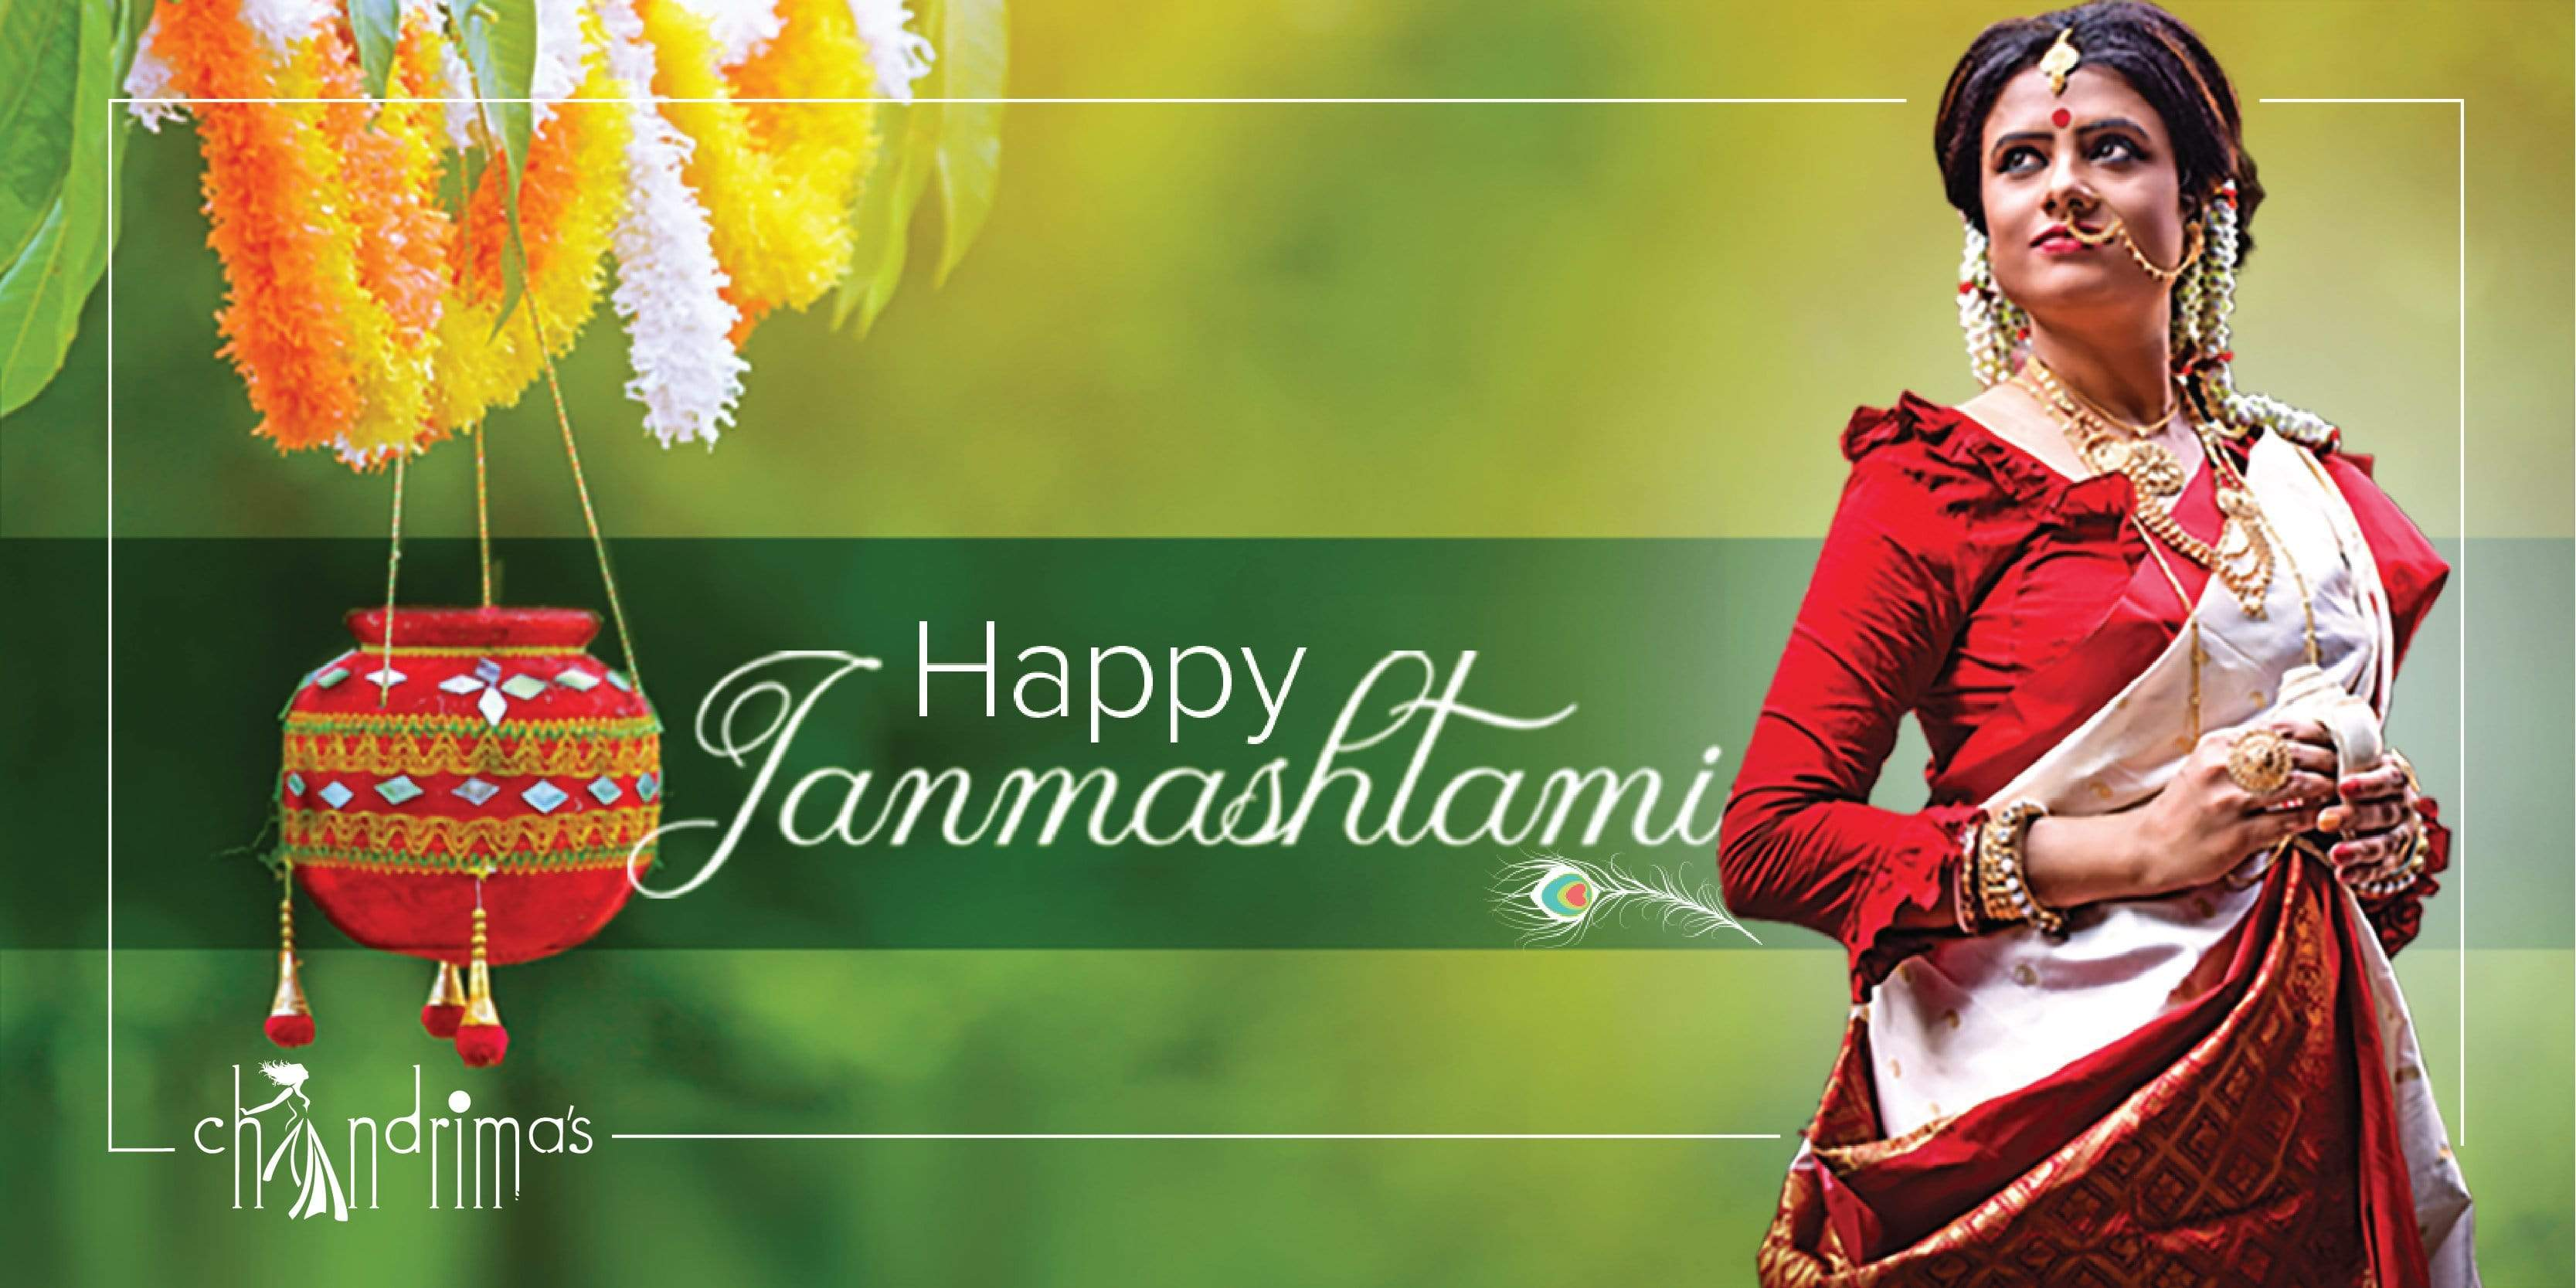 A Janmashtami with a Difference